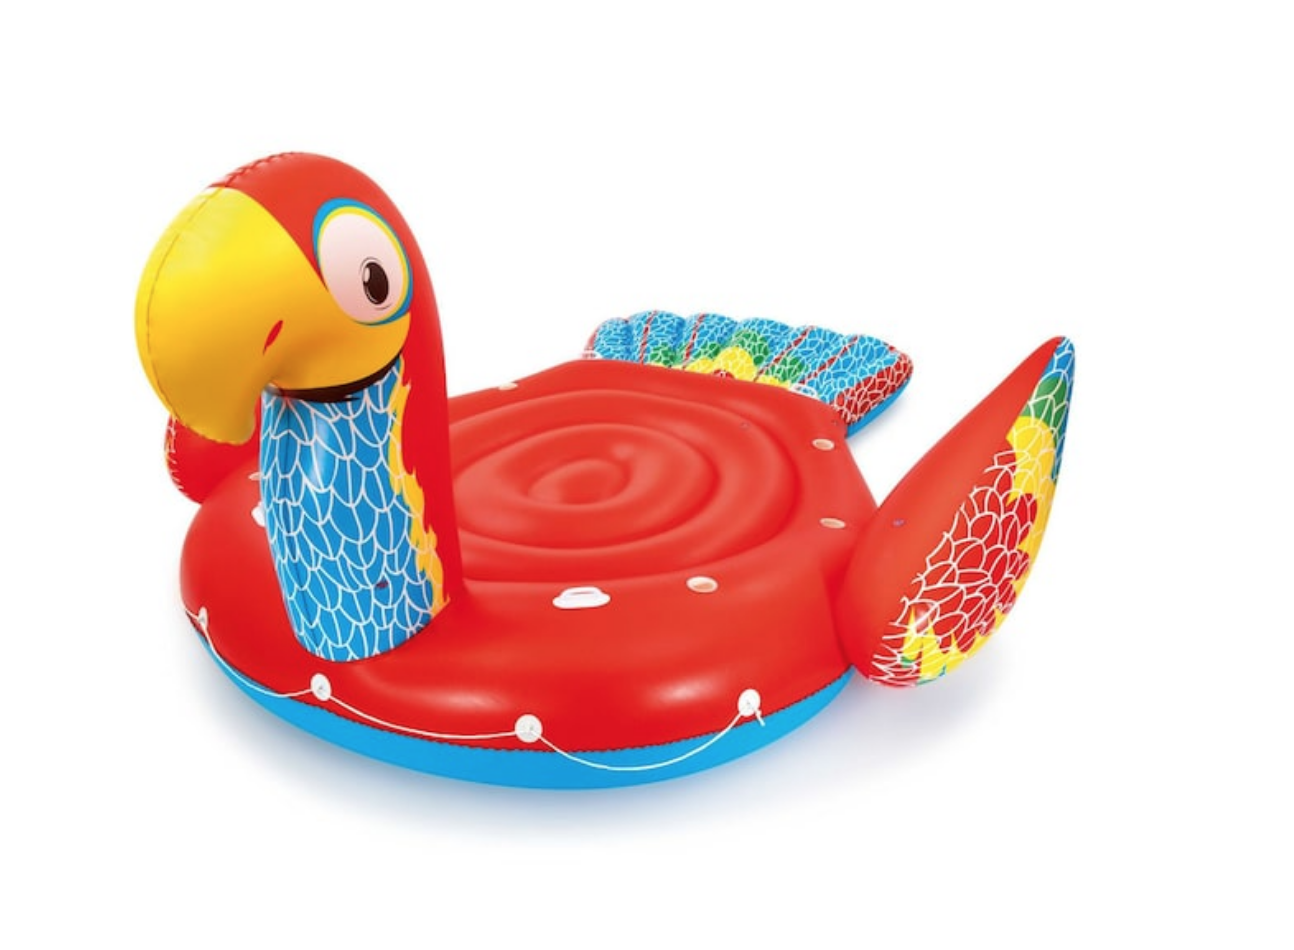 giant parrot pool float, red parrot floating pool toy, swim platform